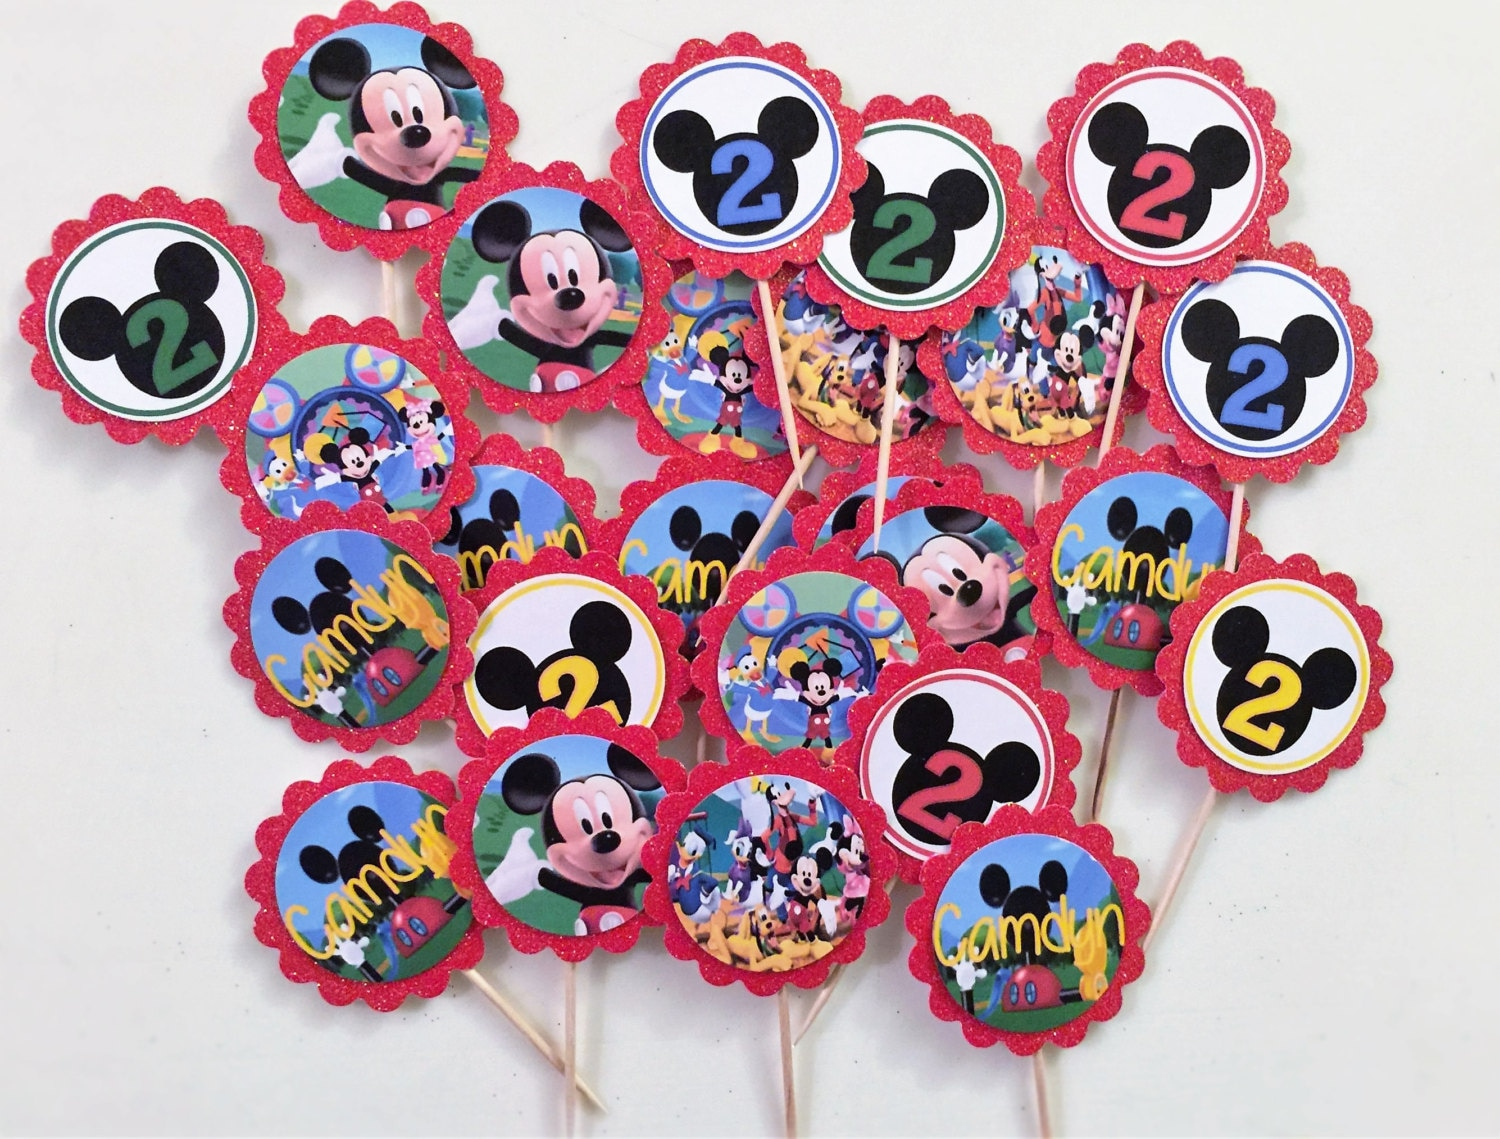 24 Mickey Mouse Clubhouse Cupcake Toppers birthday cupcakeMickey Mouse Cupcake Toppers